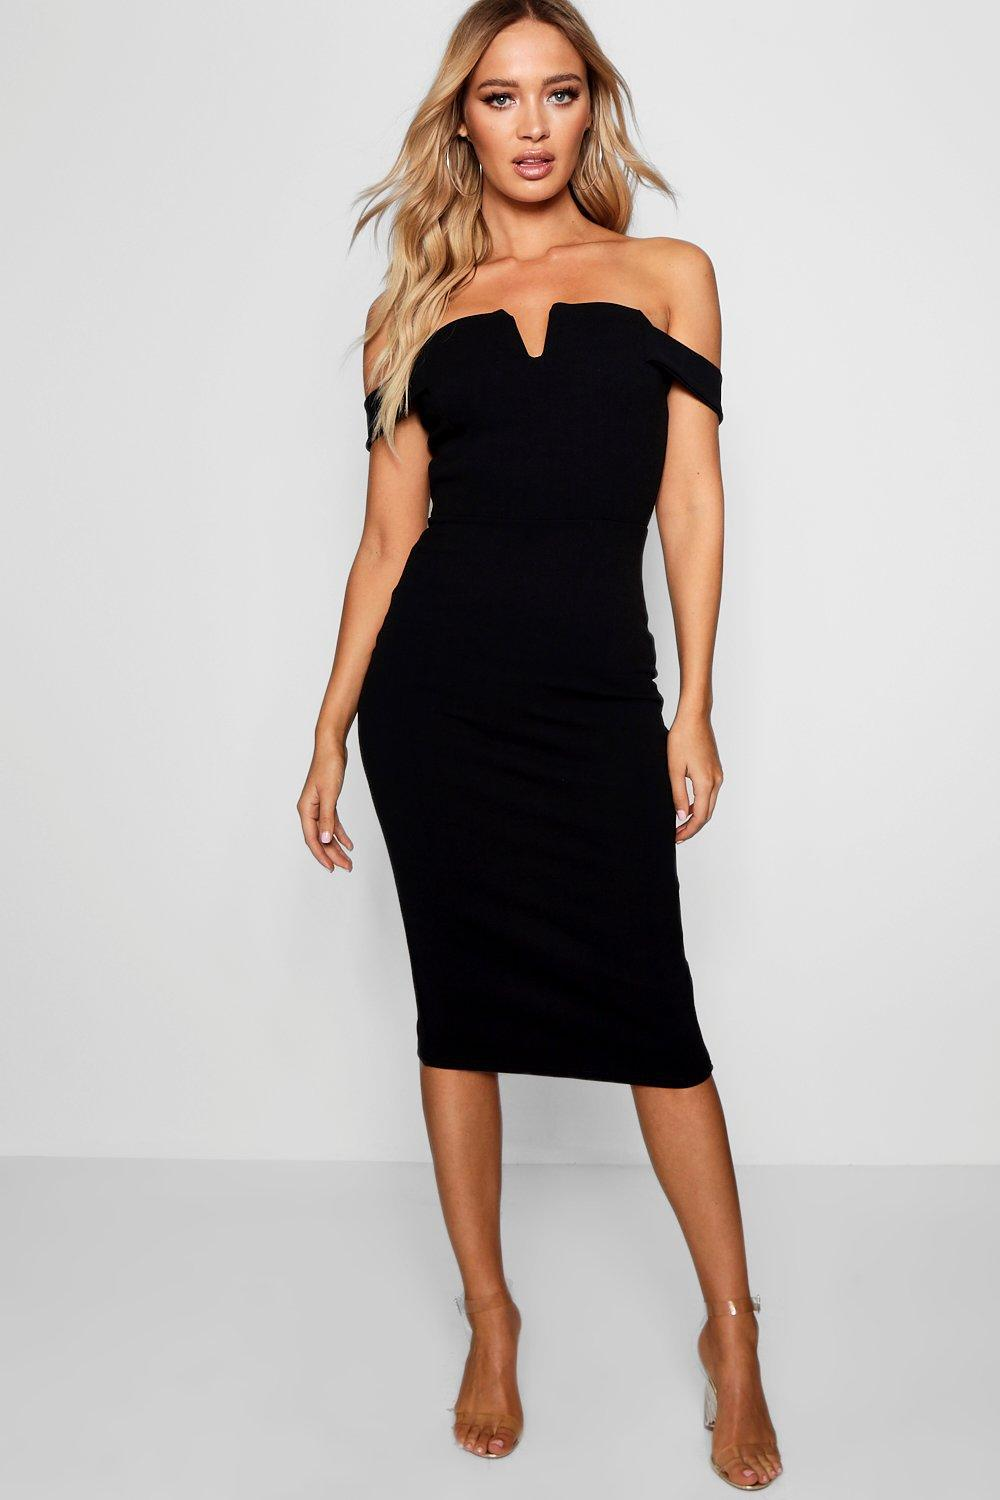 cc17e144e0a0 Boohoo Bardot Midi Bodycon Dress in Black - Lyst